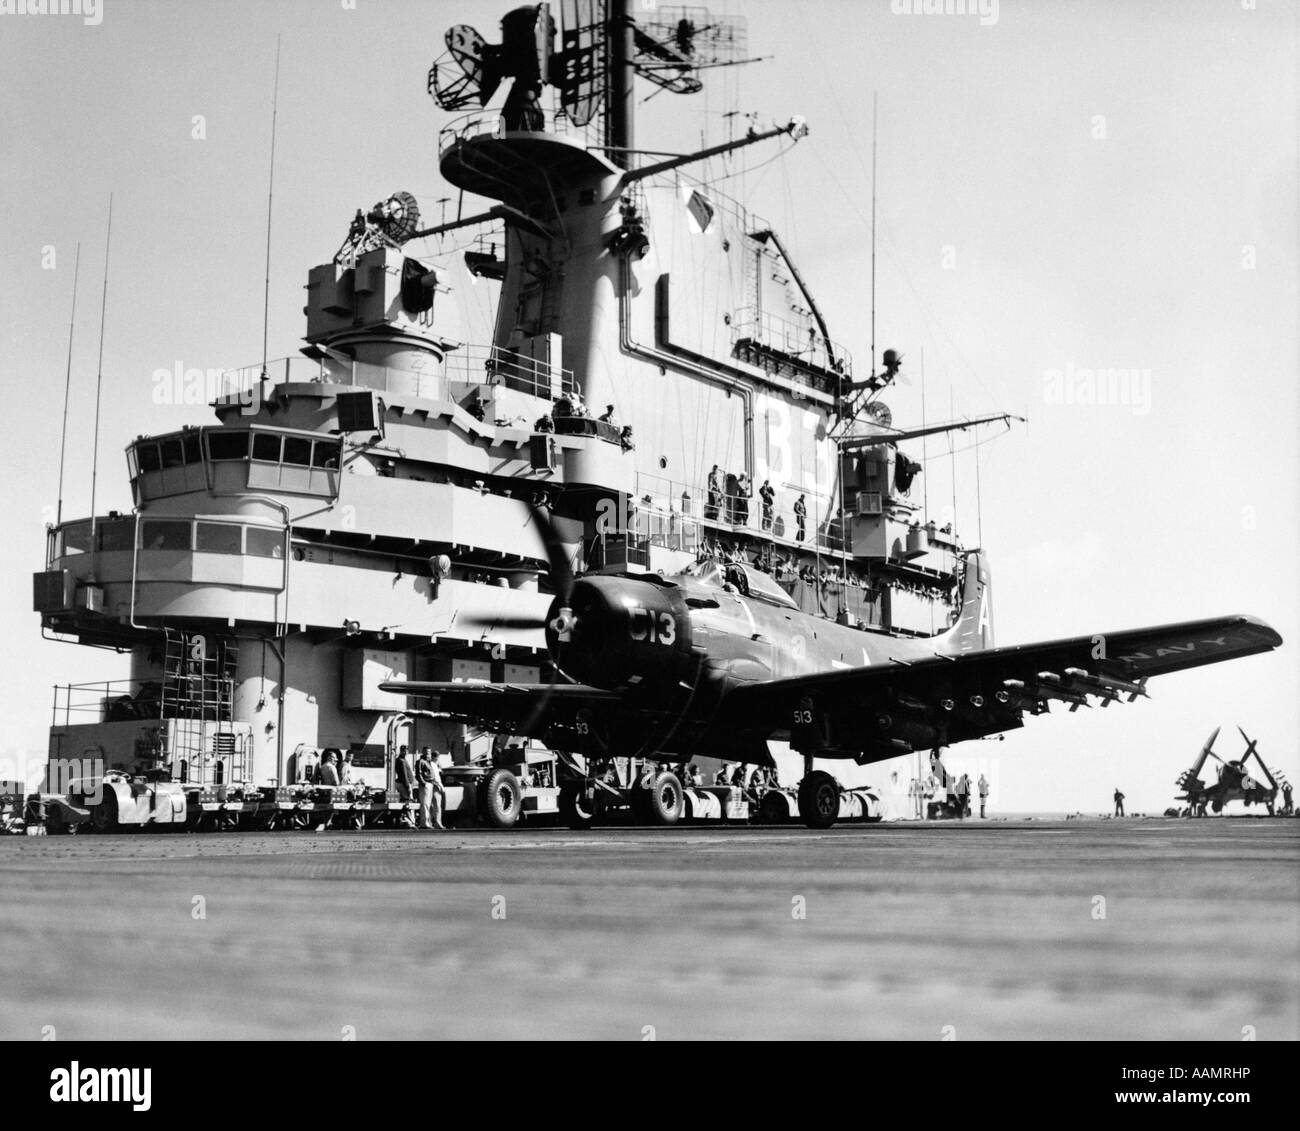 1950s LAUNCHING ATTACK BOMBER AIRPLANE FROM DECK OF AIRCRAFT CARRIER DURING KOREAN WAR US NAVY SHIP USS KEARSARGE - Stock Image